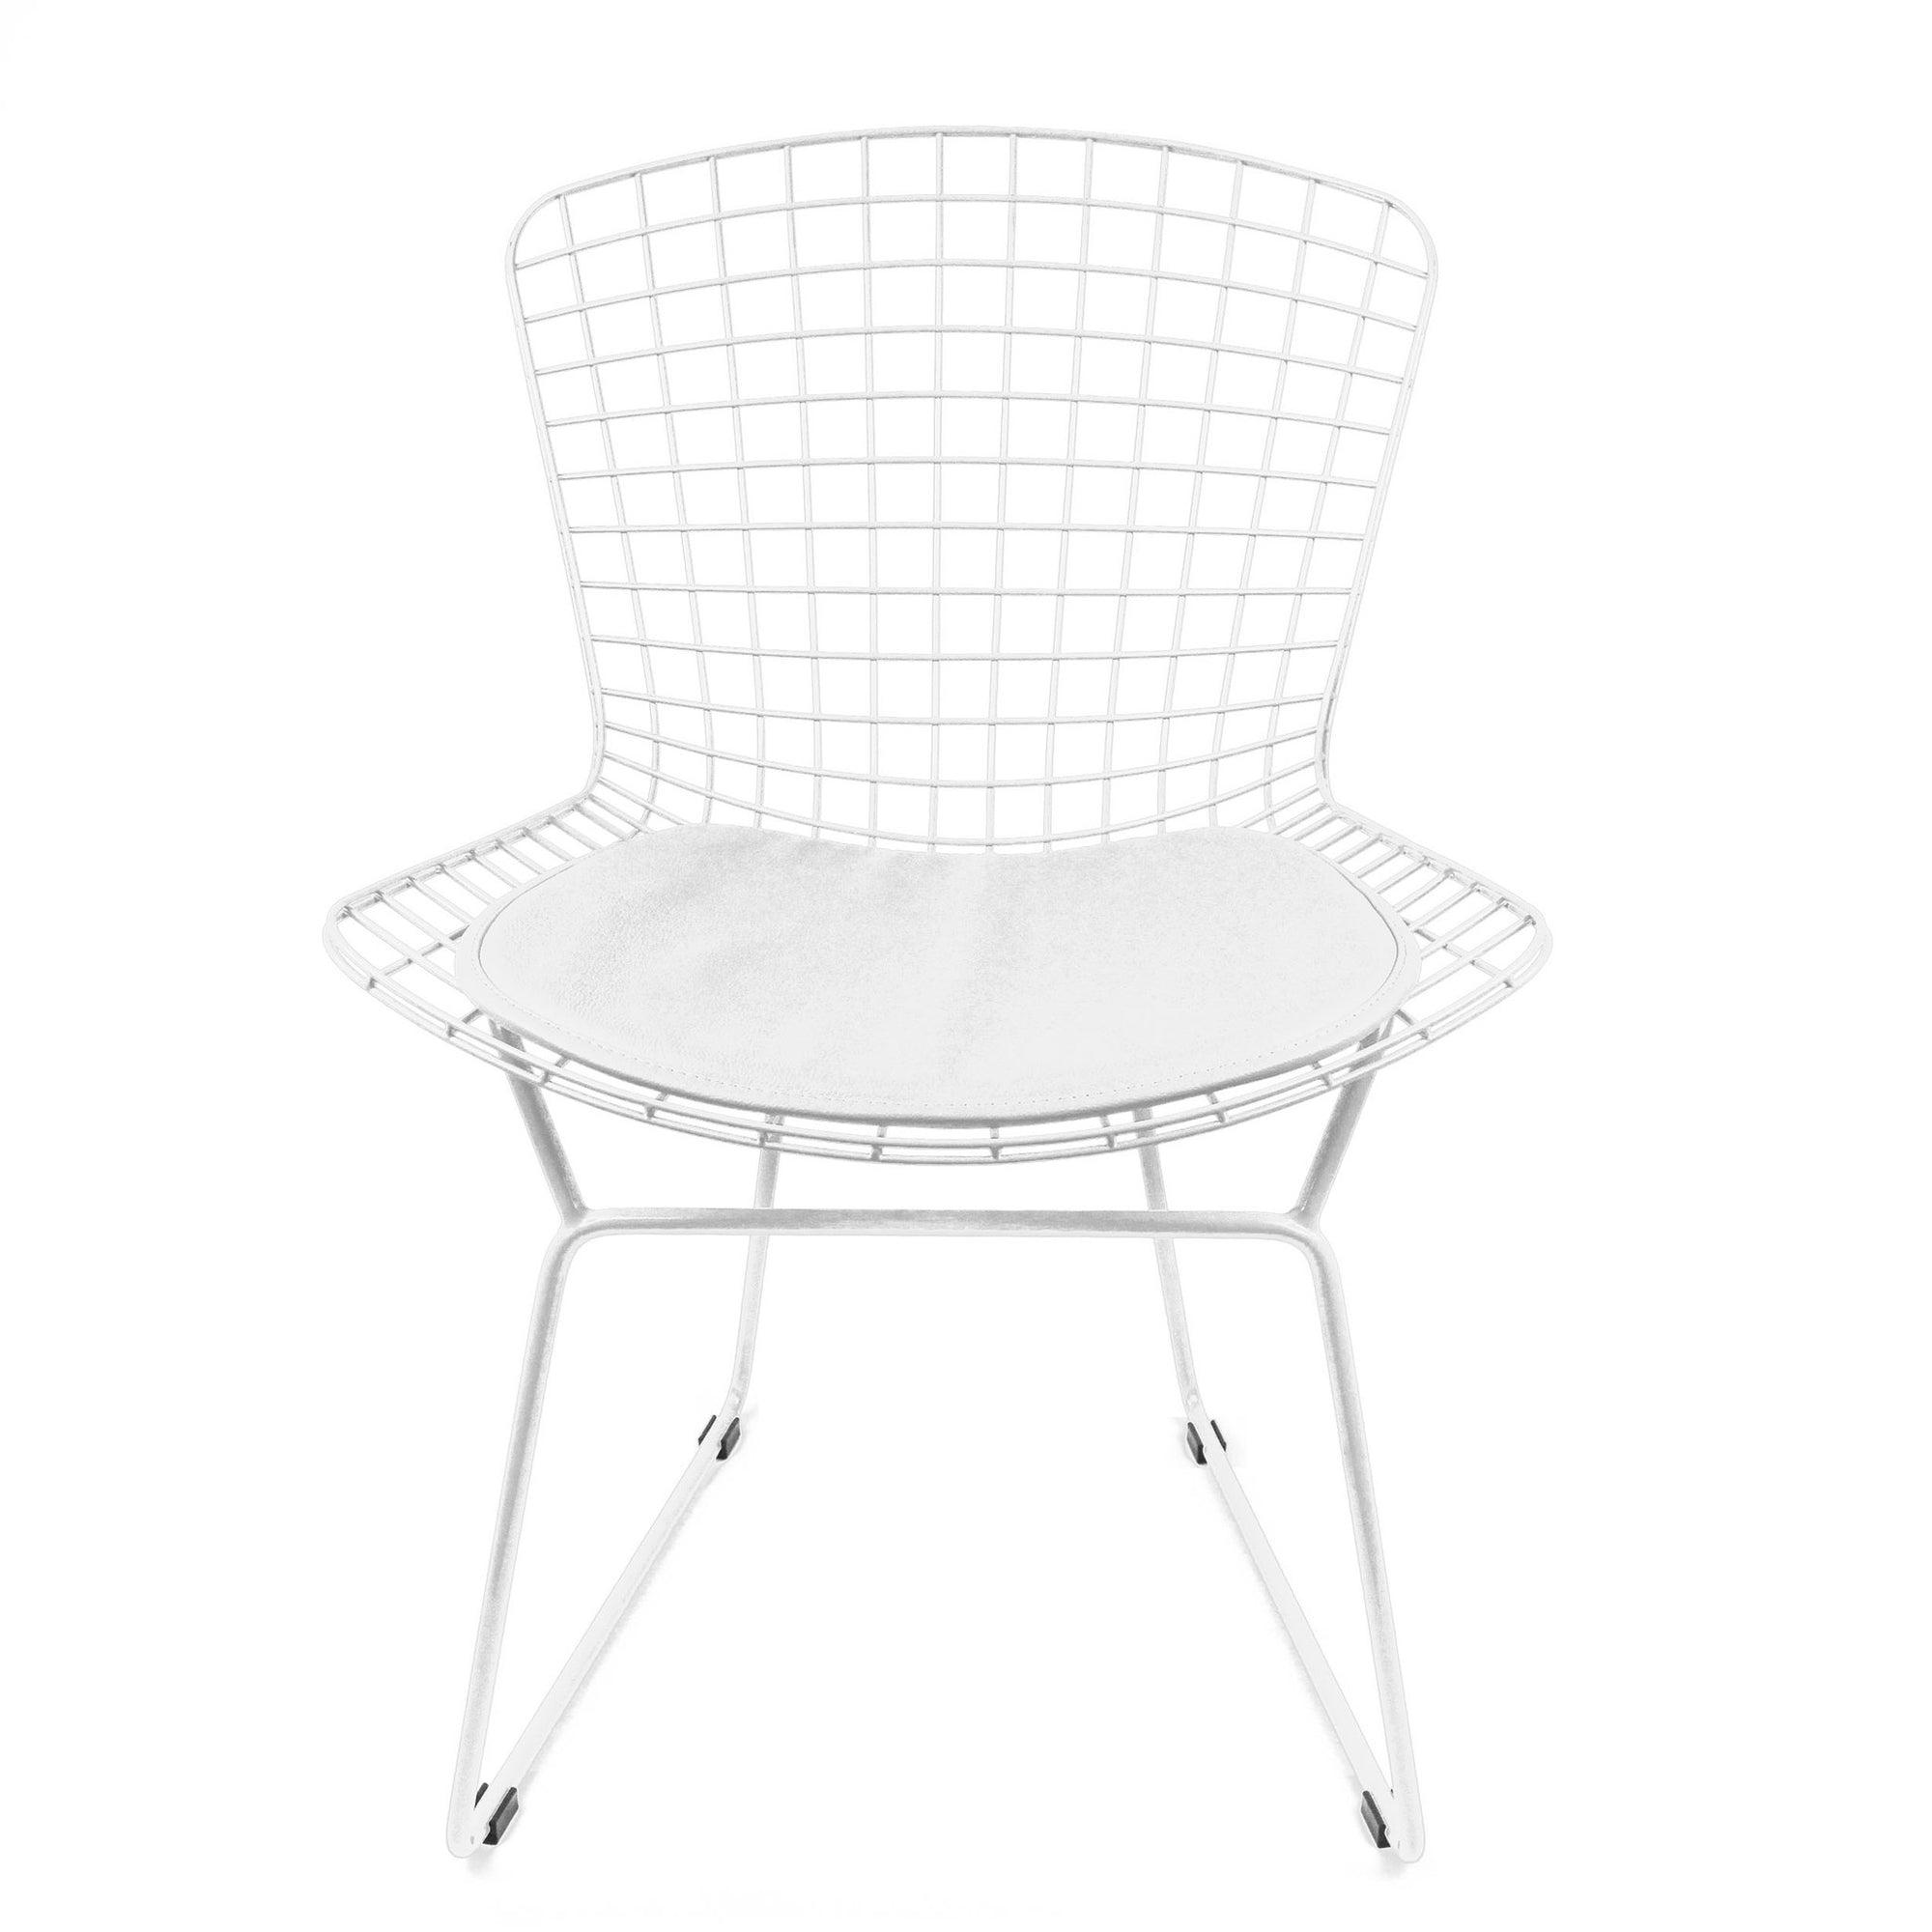 Chair - Wire Chair&Genuin Leather Cushion BP8020-W